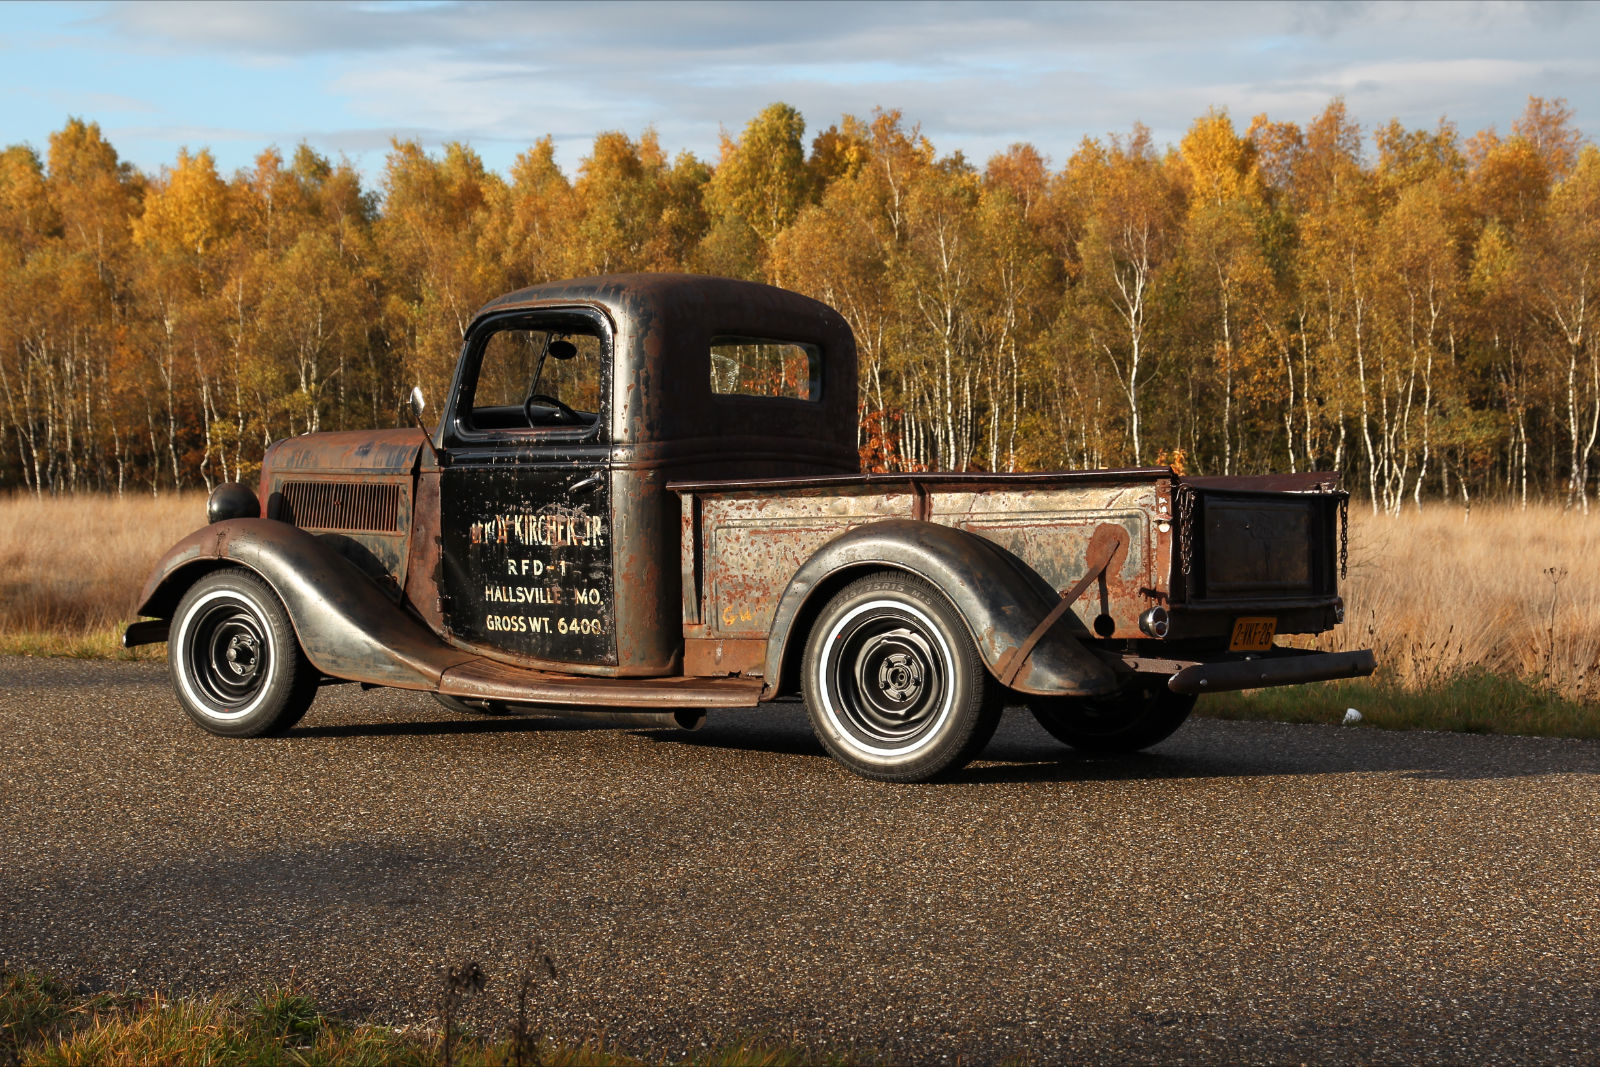 Rodcitygarage 1951 1952 Ford Hot Rod Truck Pics 1937 Rat